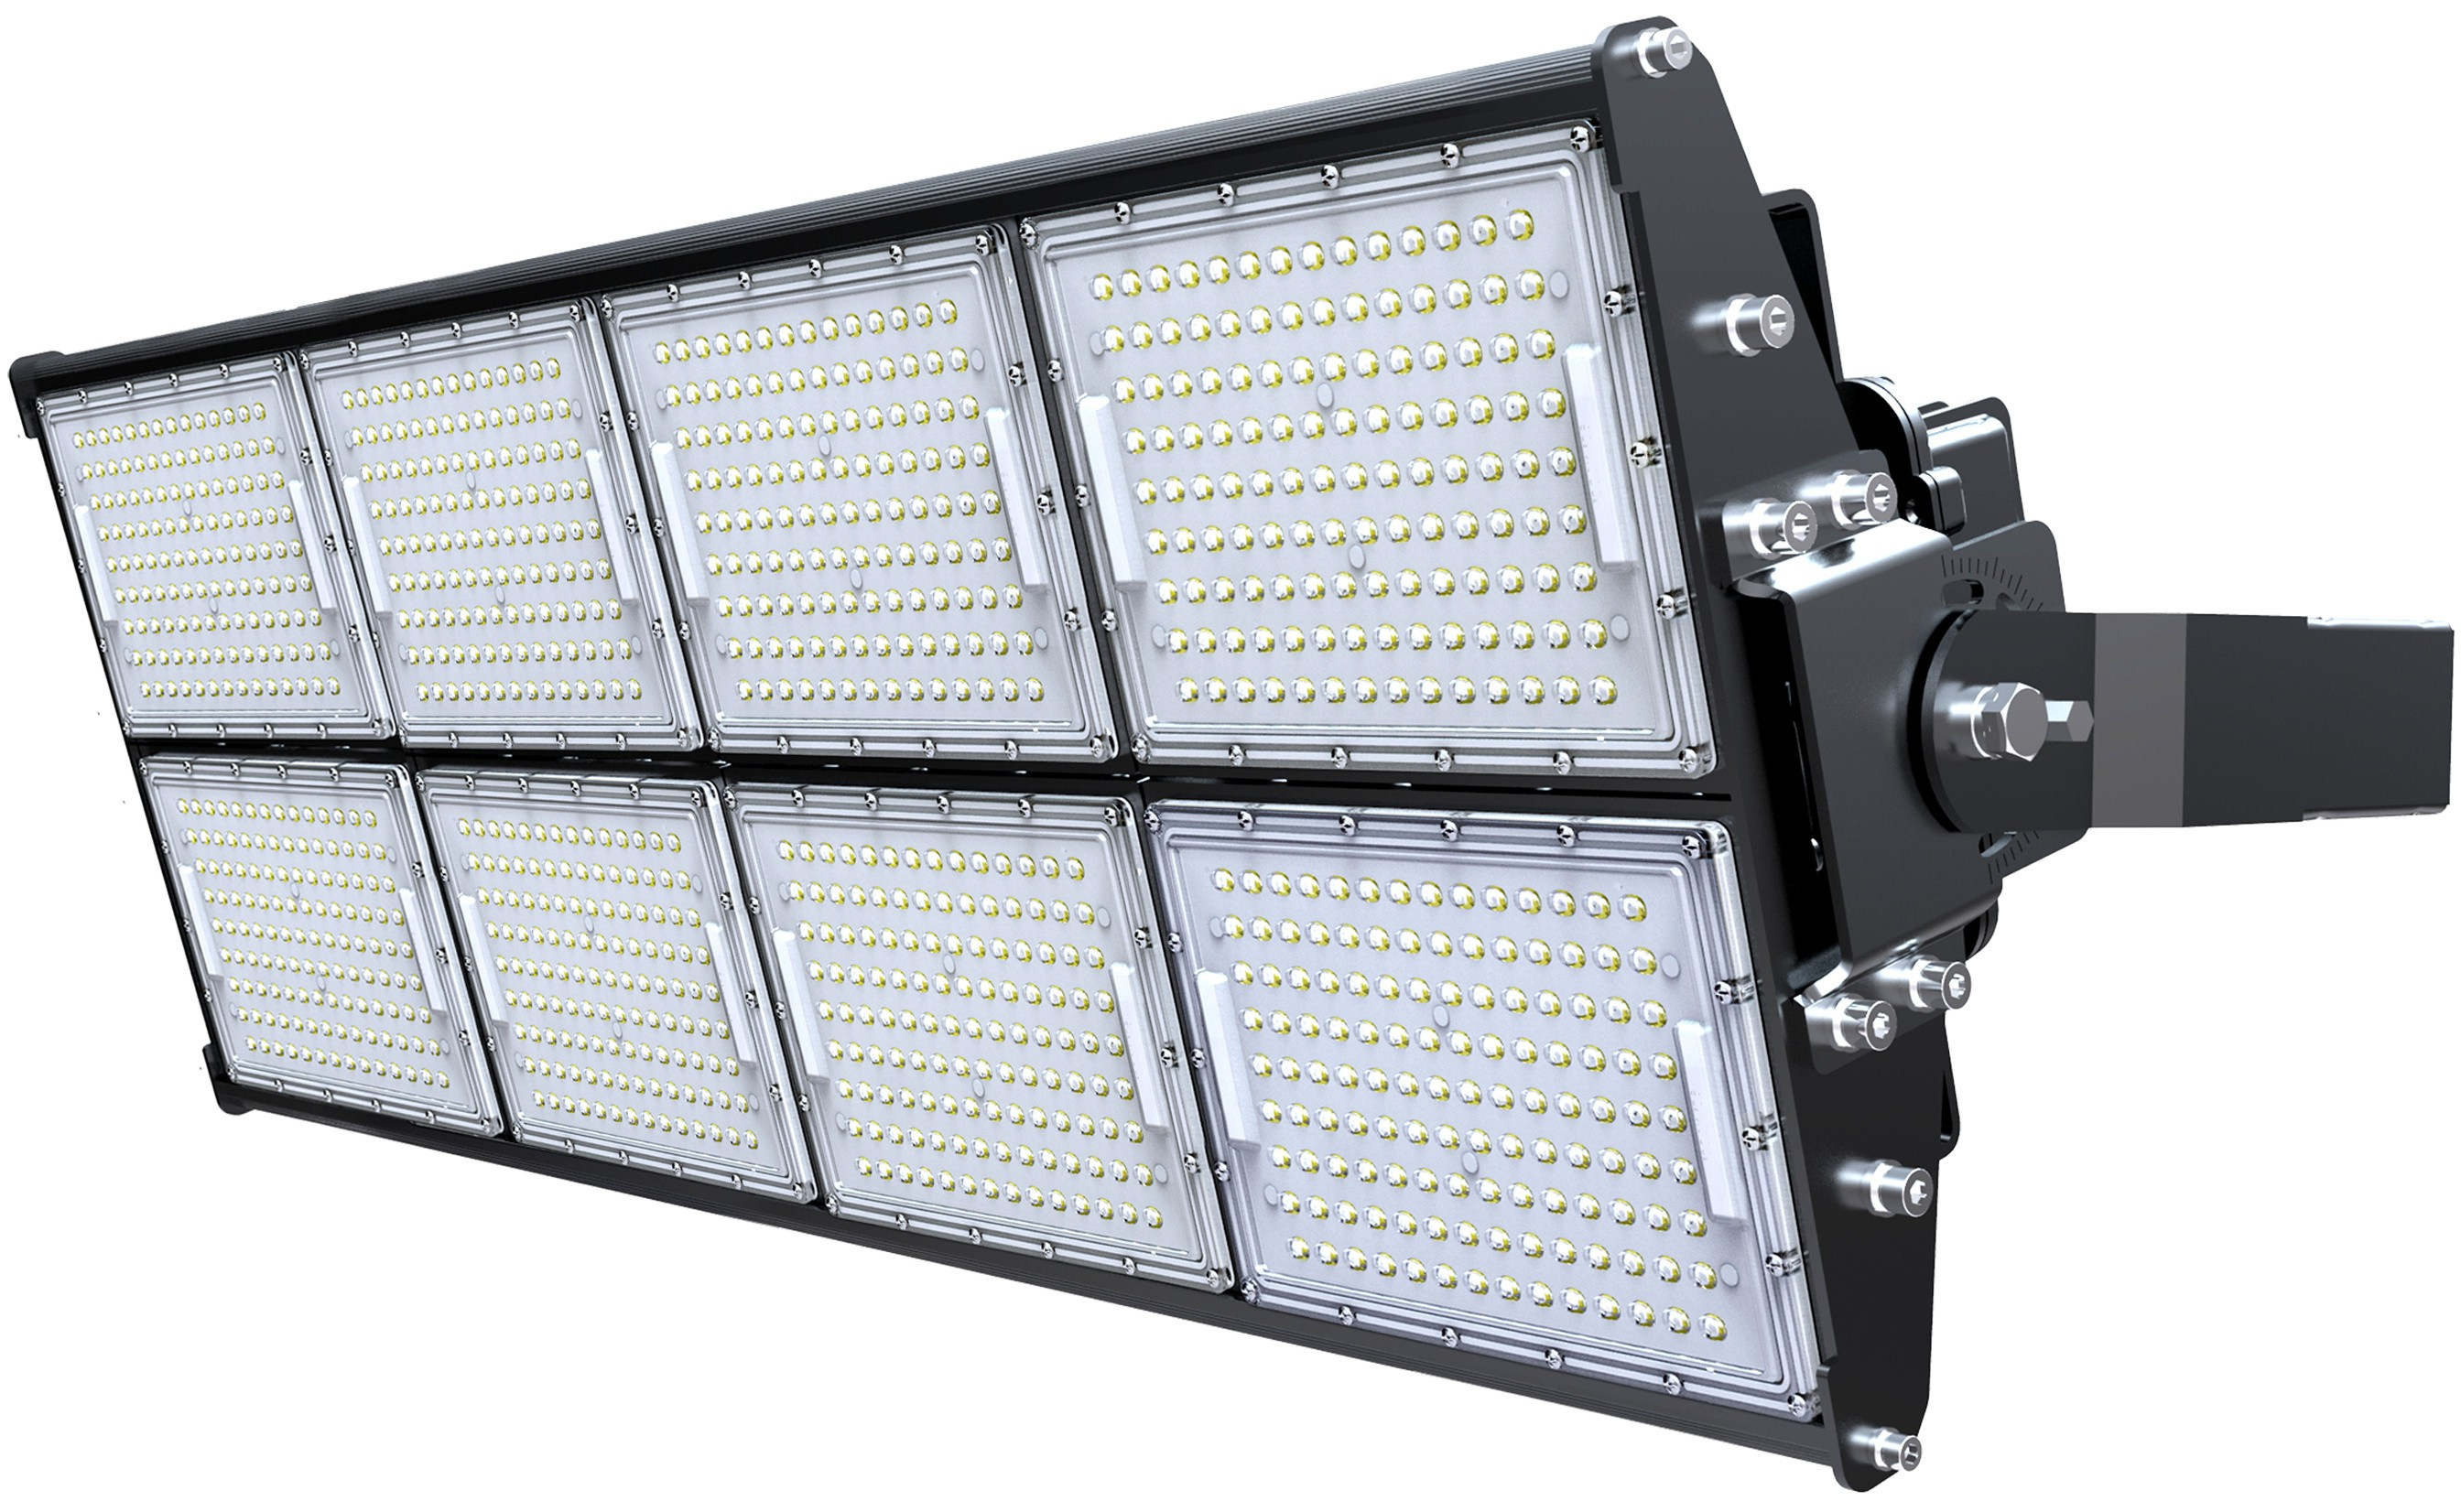 LED STADIUM FLOOD LIGHT - 960W - 124,800 LUMENS - 5700K